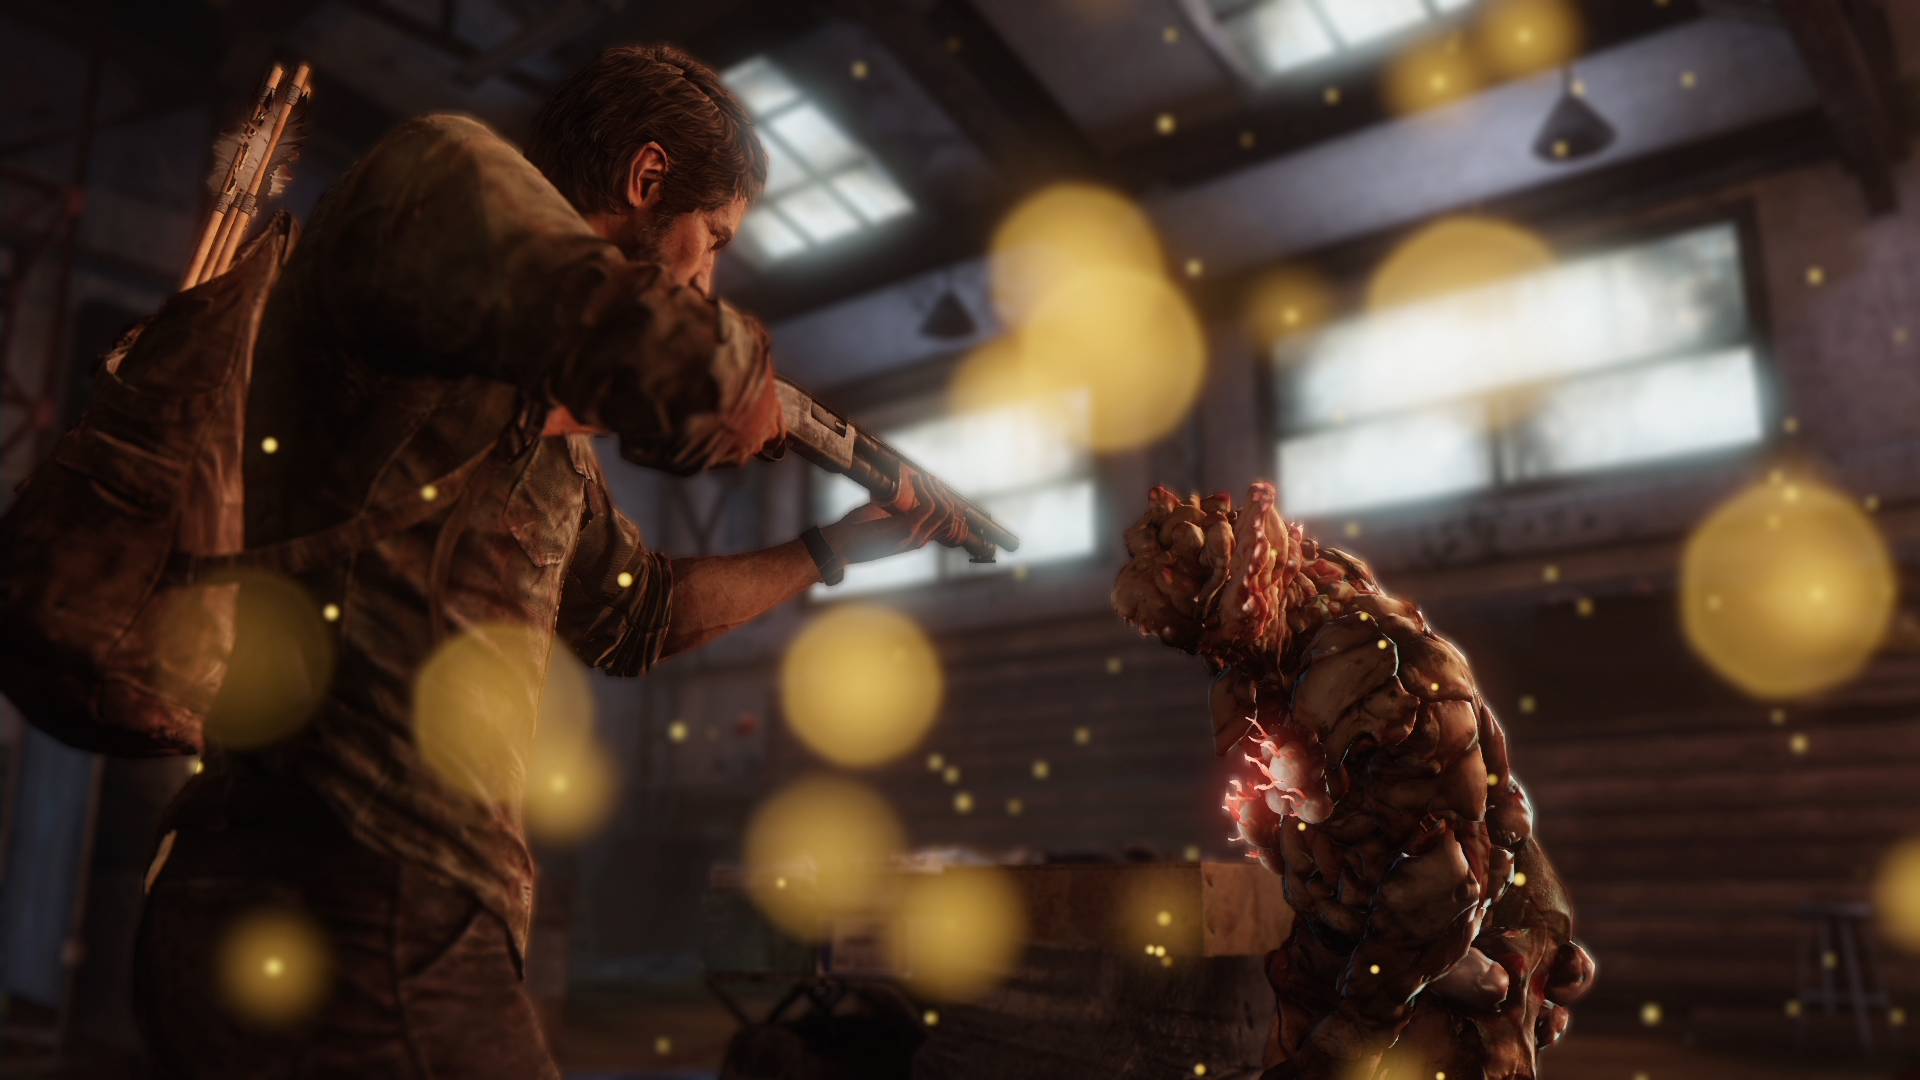 The Last of Us Remastered 29-07-14 019